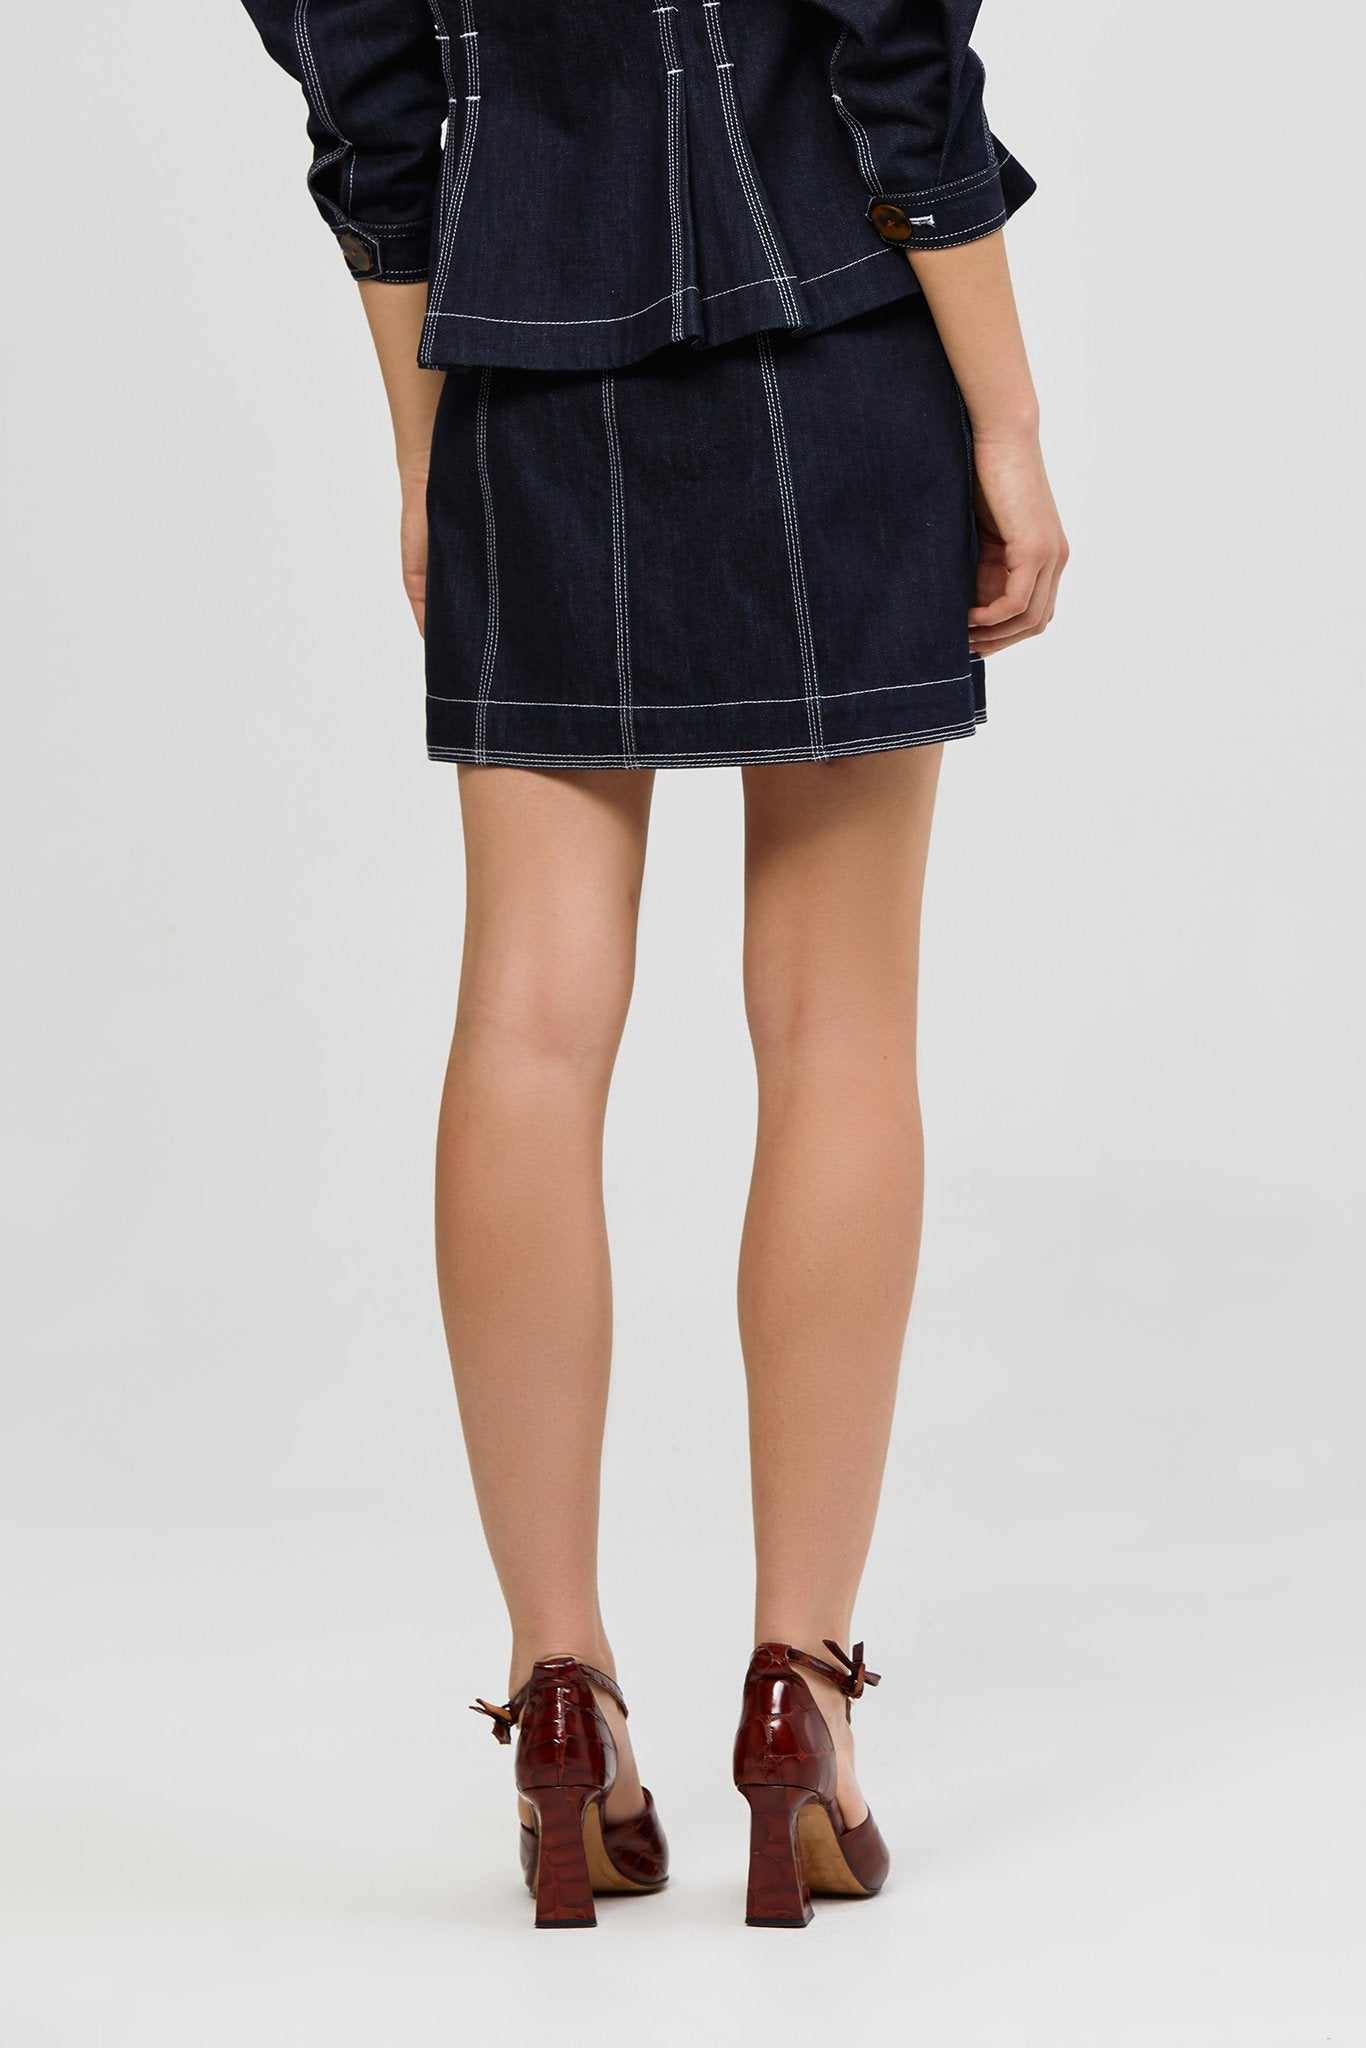 Golding Denim Skirt